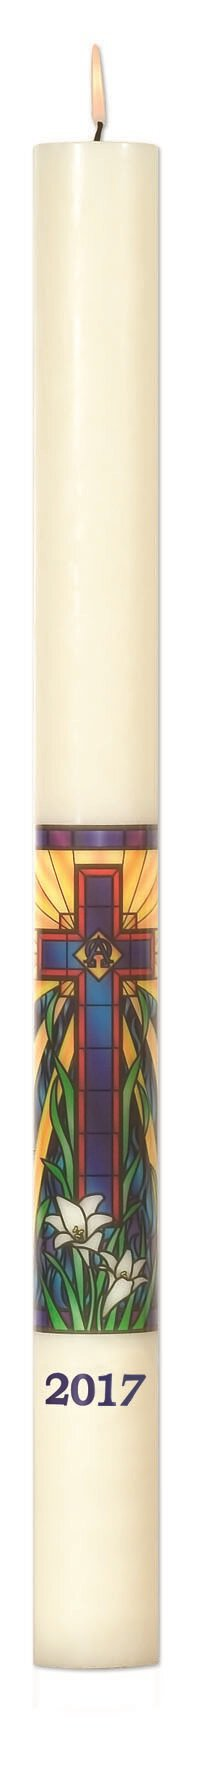 No 5 Radiant Light Mosaic Paschal Candle